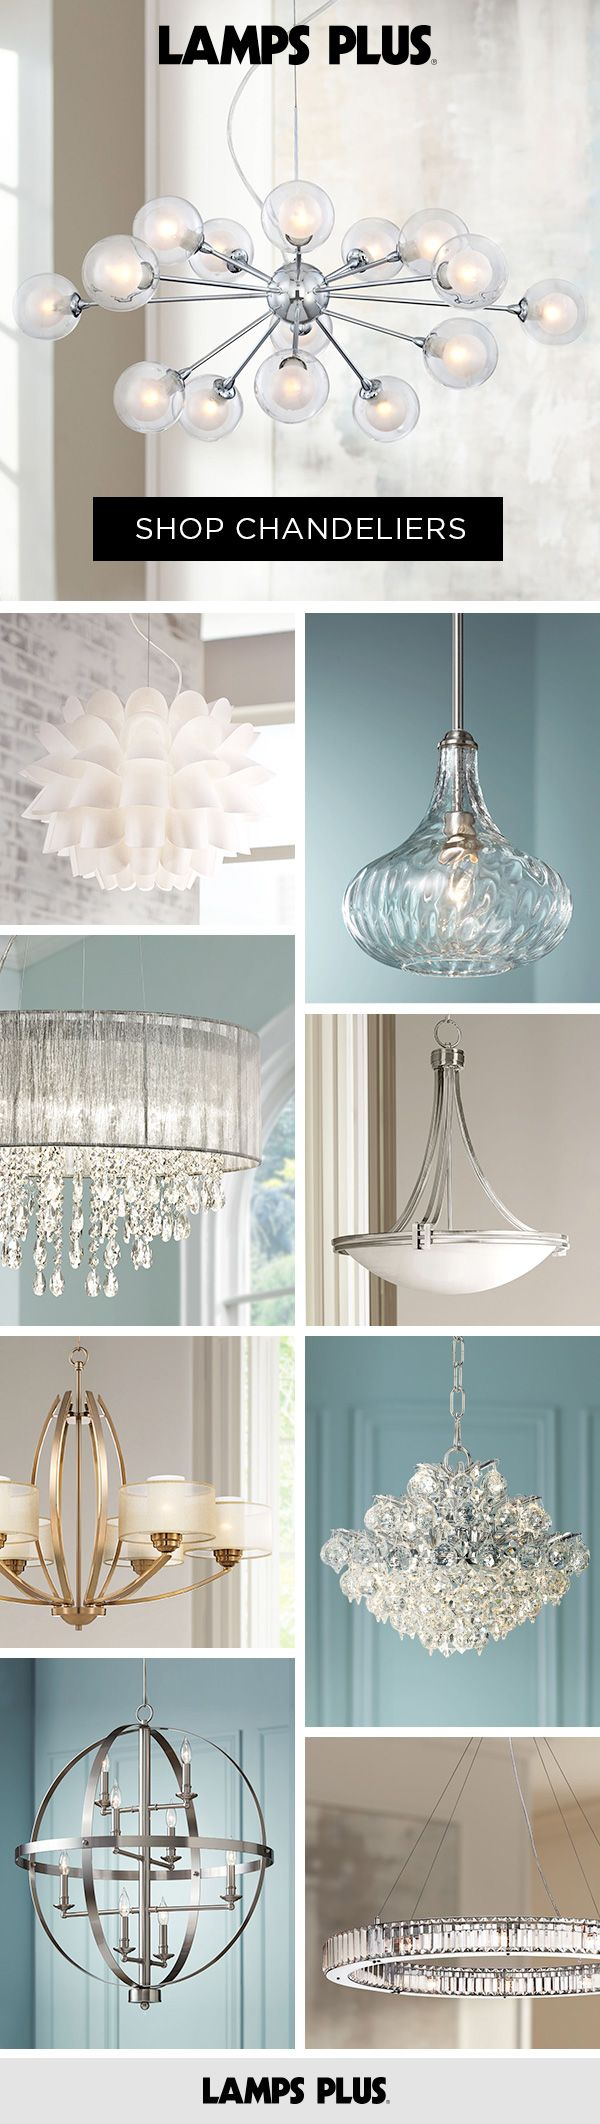 1279 best Chandeliers images on Pinterest | Chandeliers, Chandelier ...